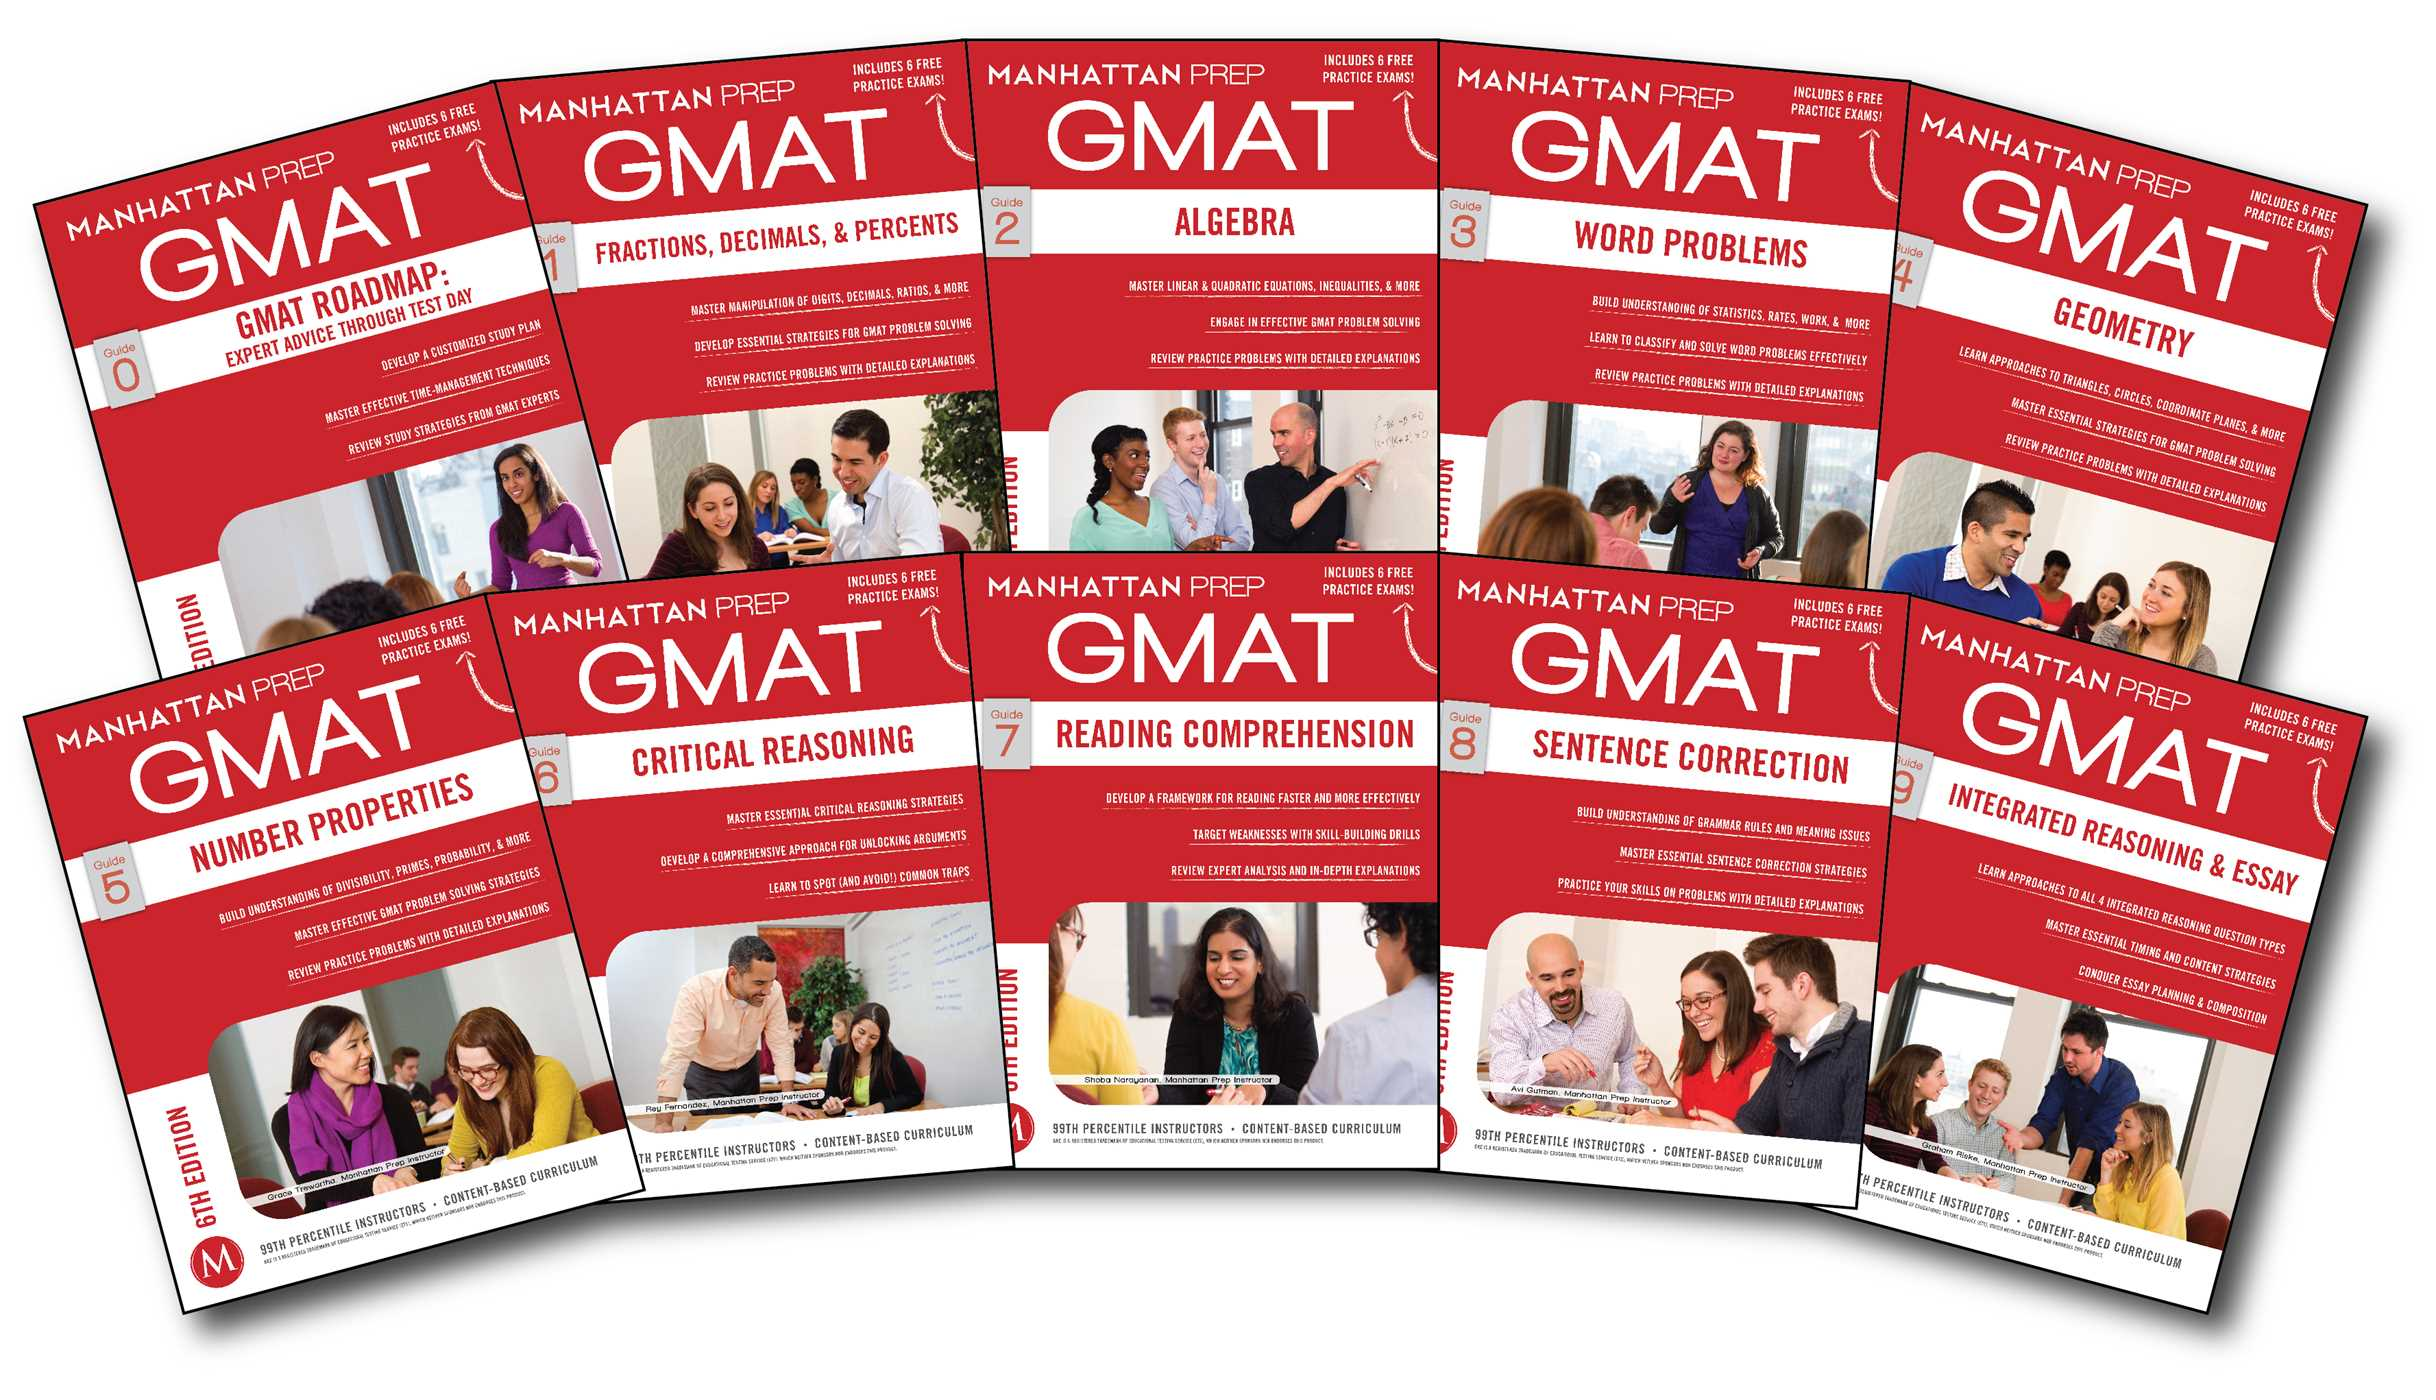 Complete-gmat-strategy-guide-set-6th-edition-9781941234105_hr